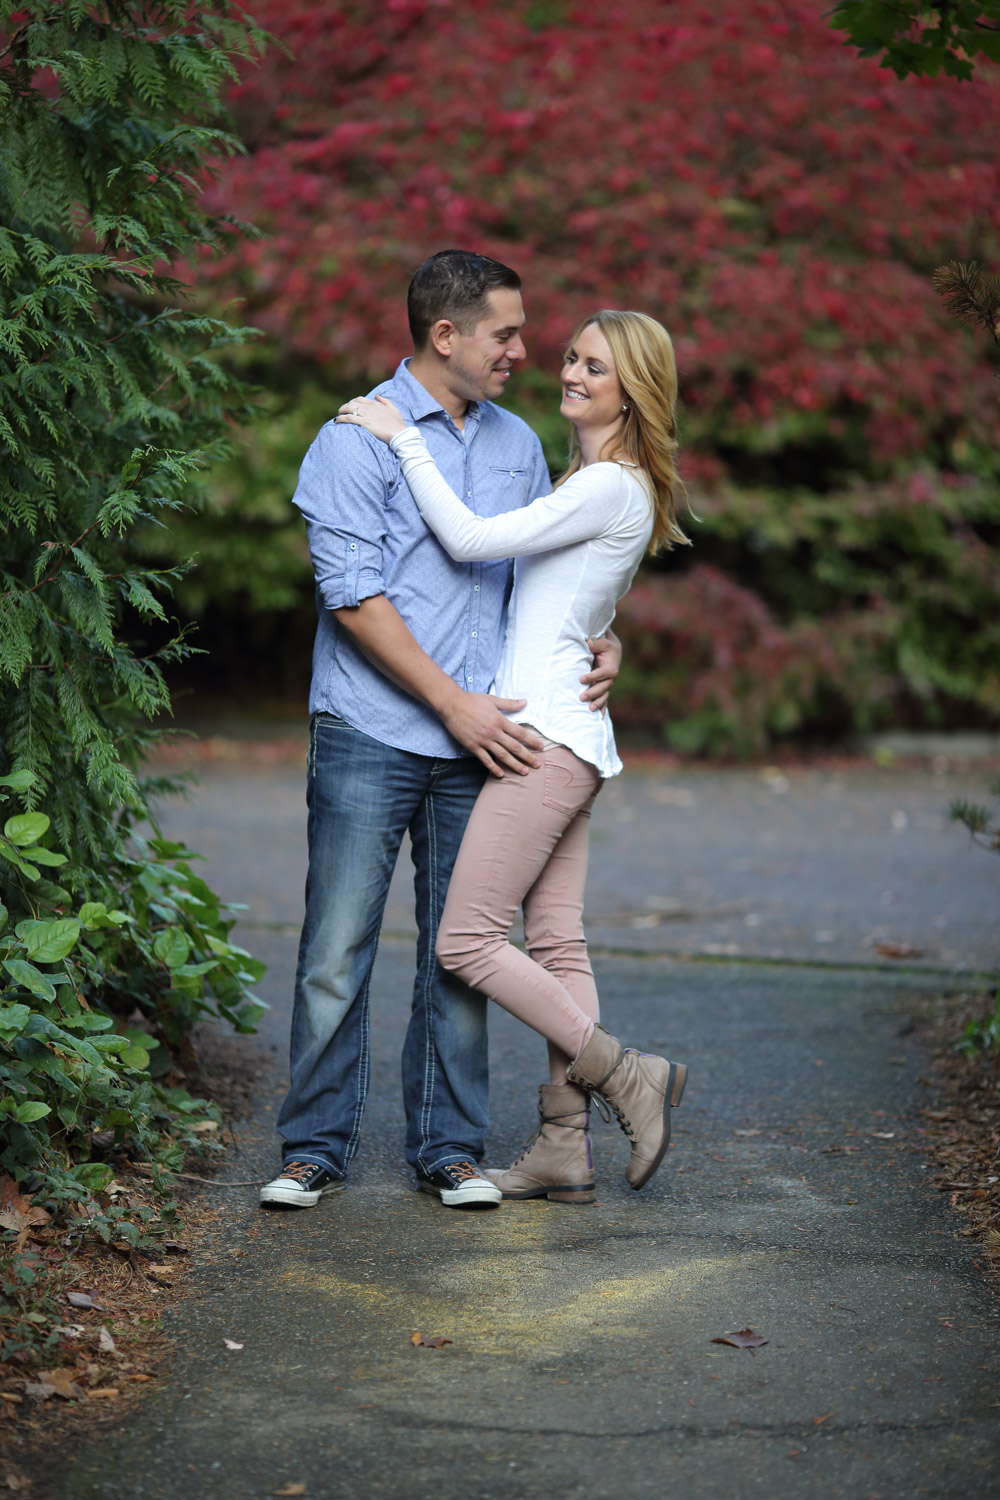 Engagement Photos Whatcom Falls Bellingham, WA02.jpg